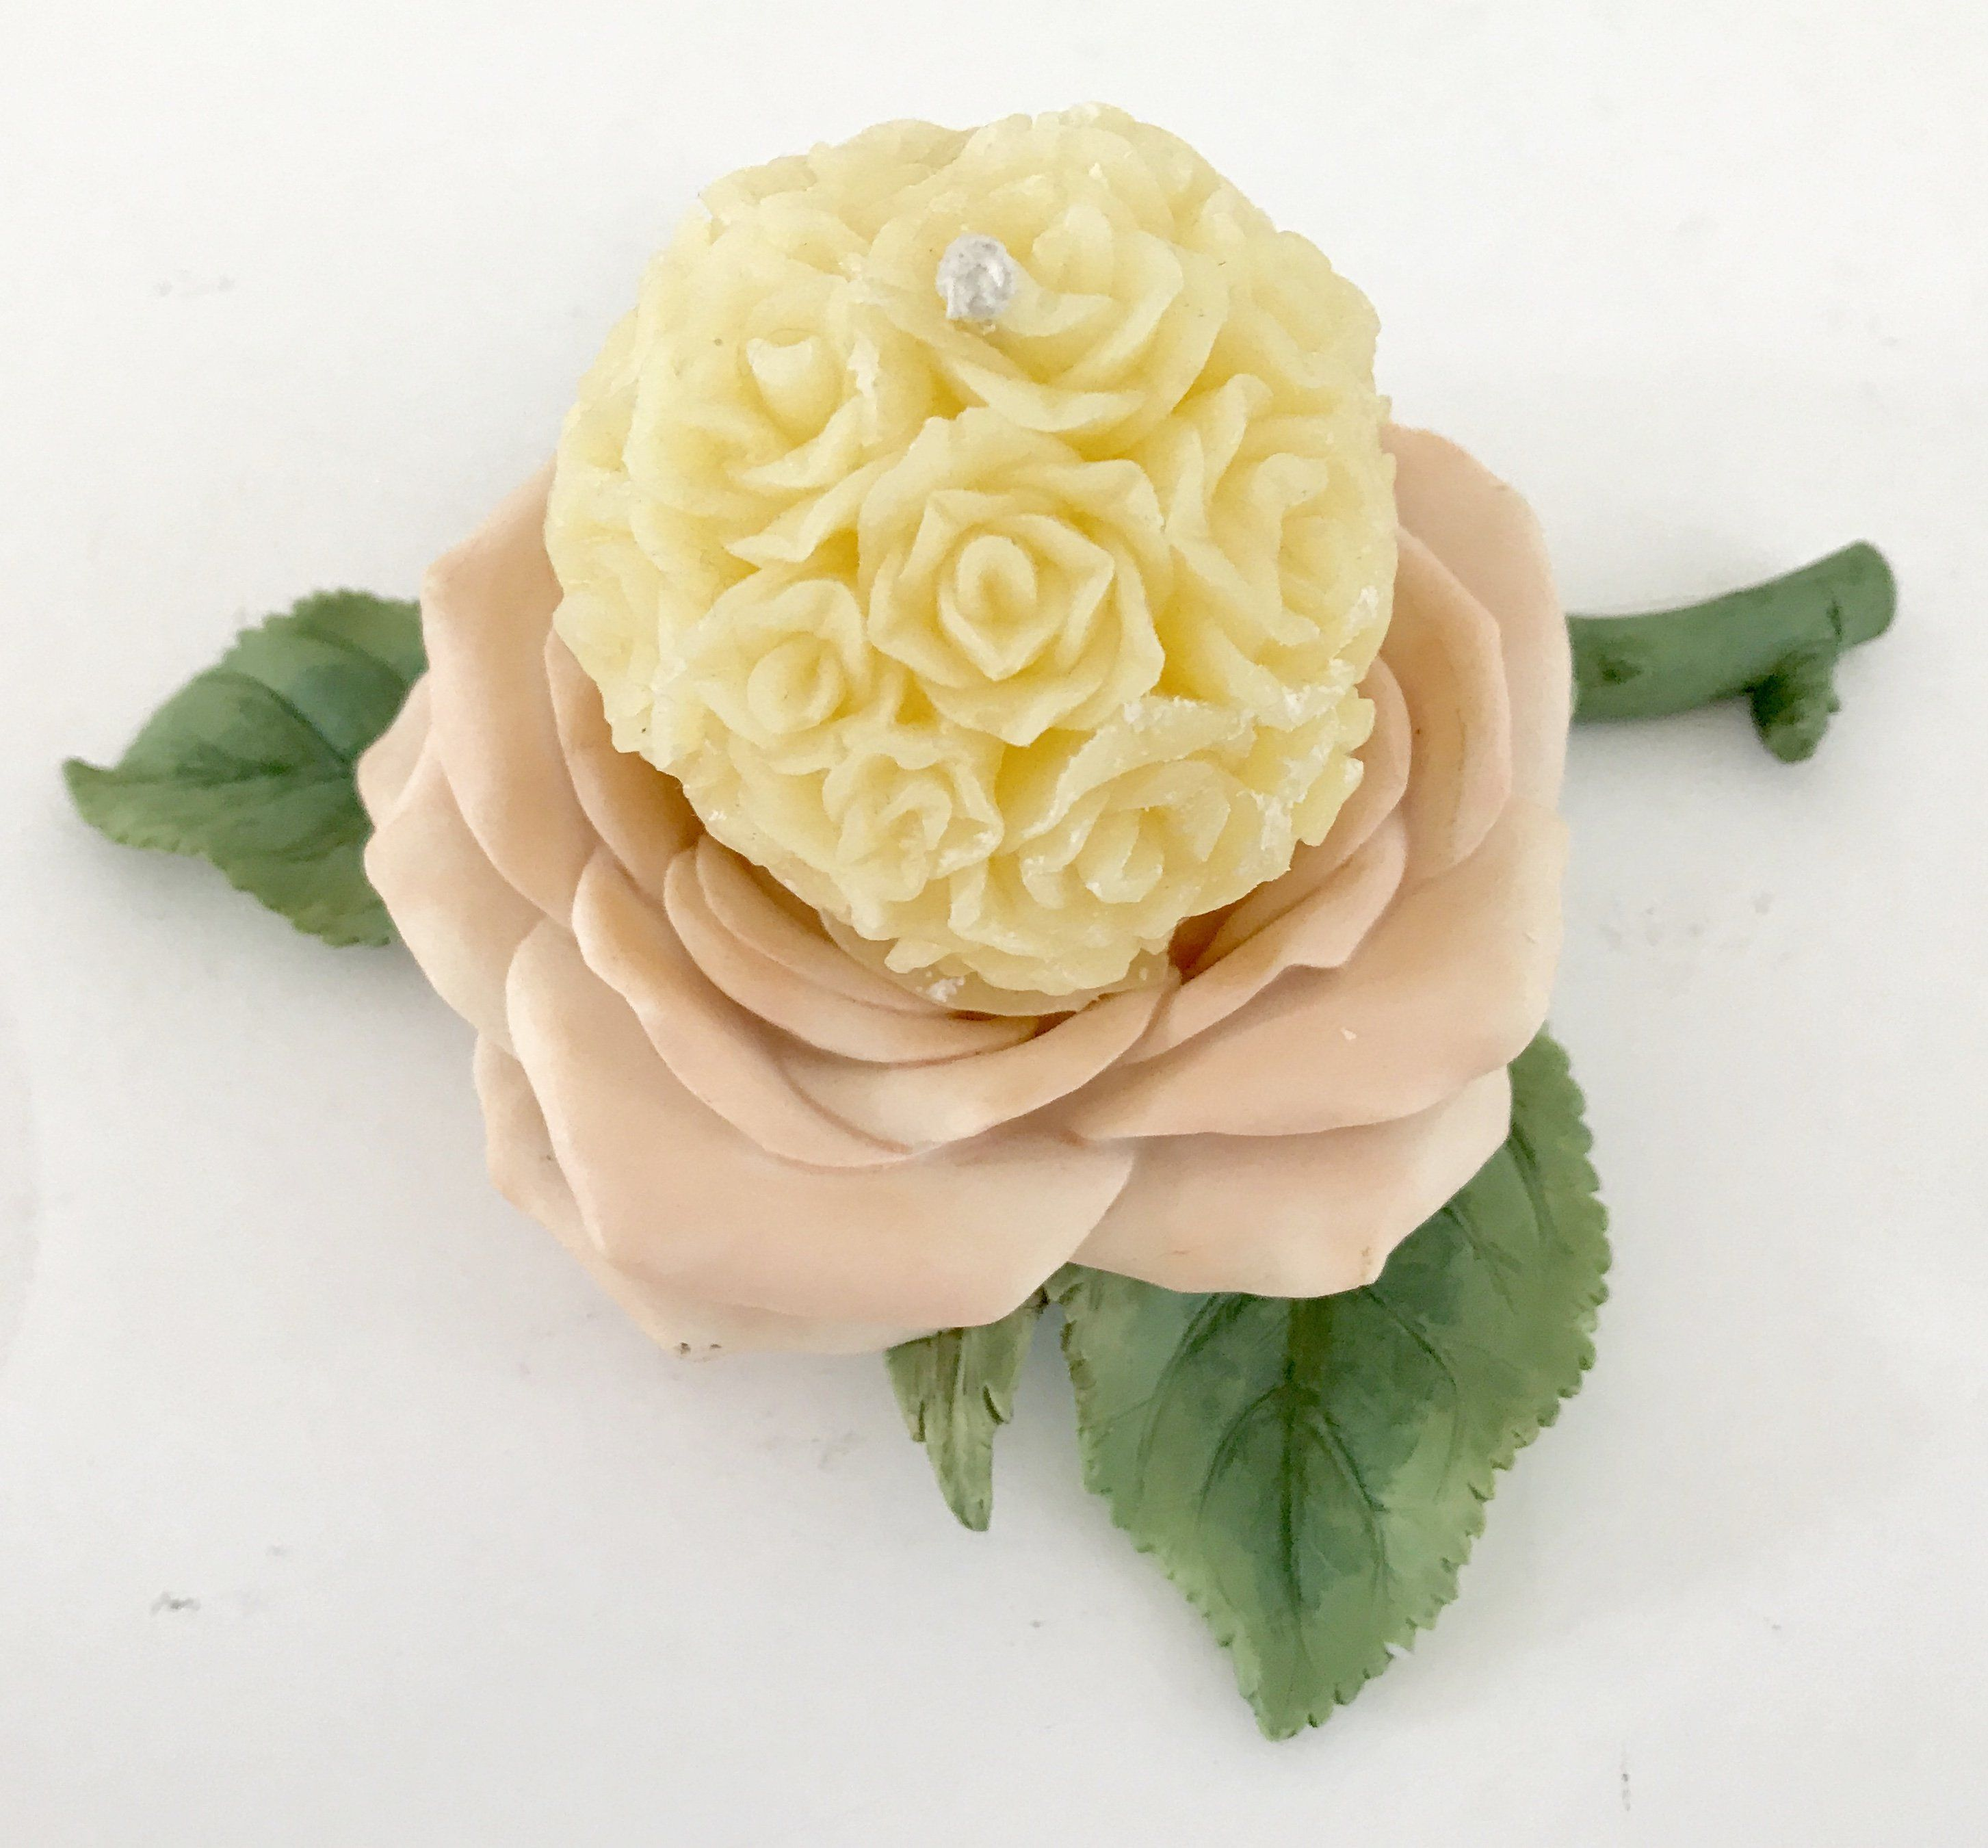 beeswax decorative floral candle resting on a ceramic pink rose